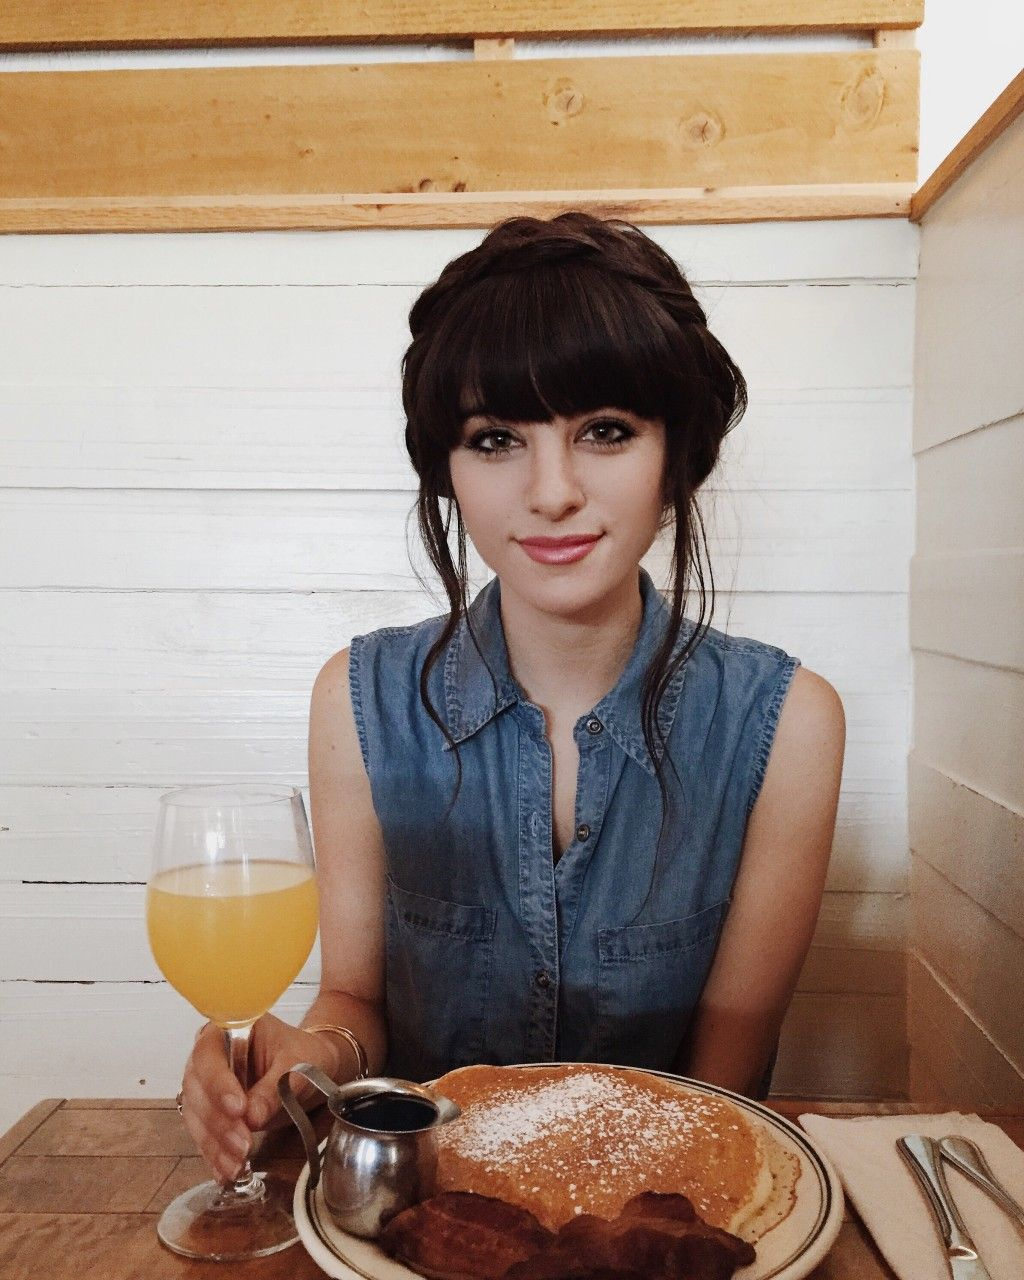 Christina from The New Darlings has the most beautiful hair!!